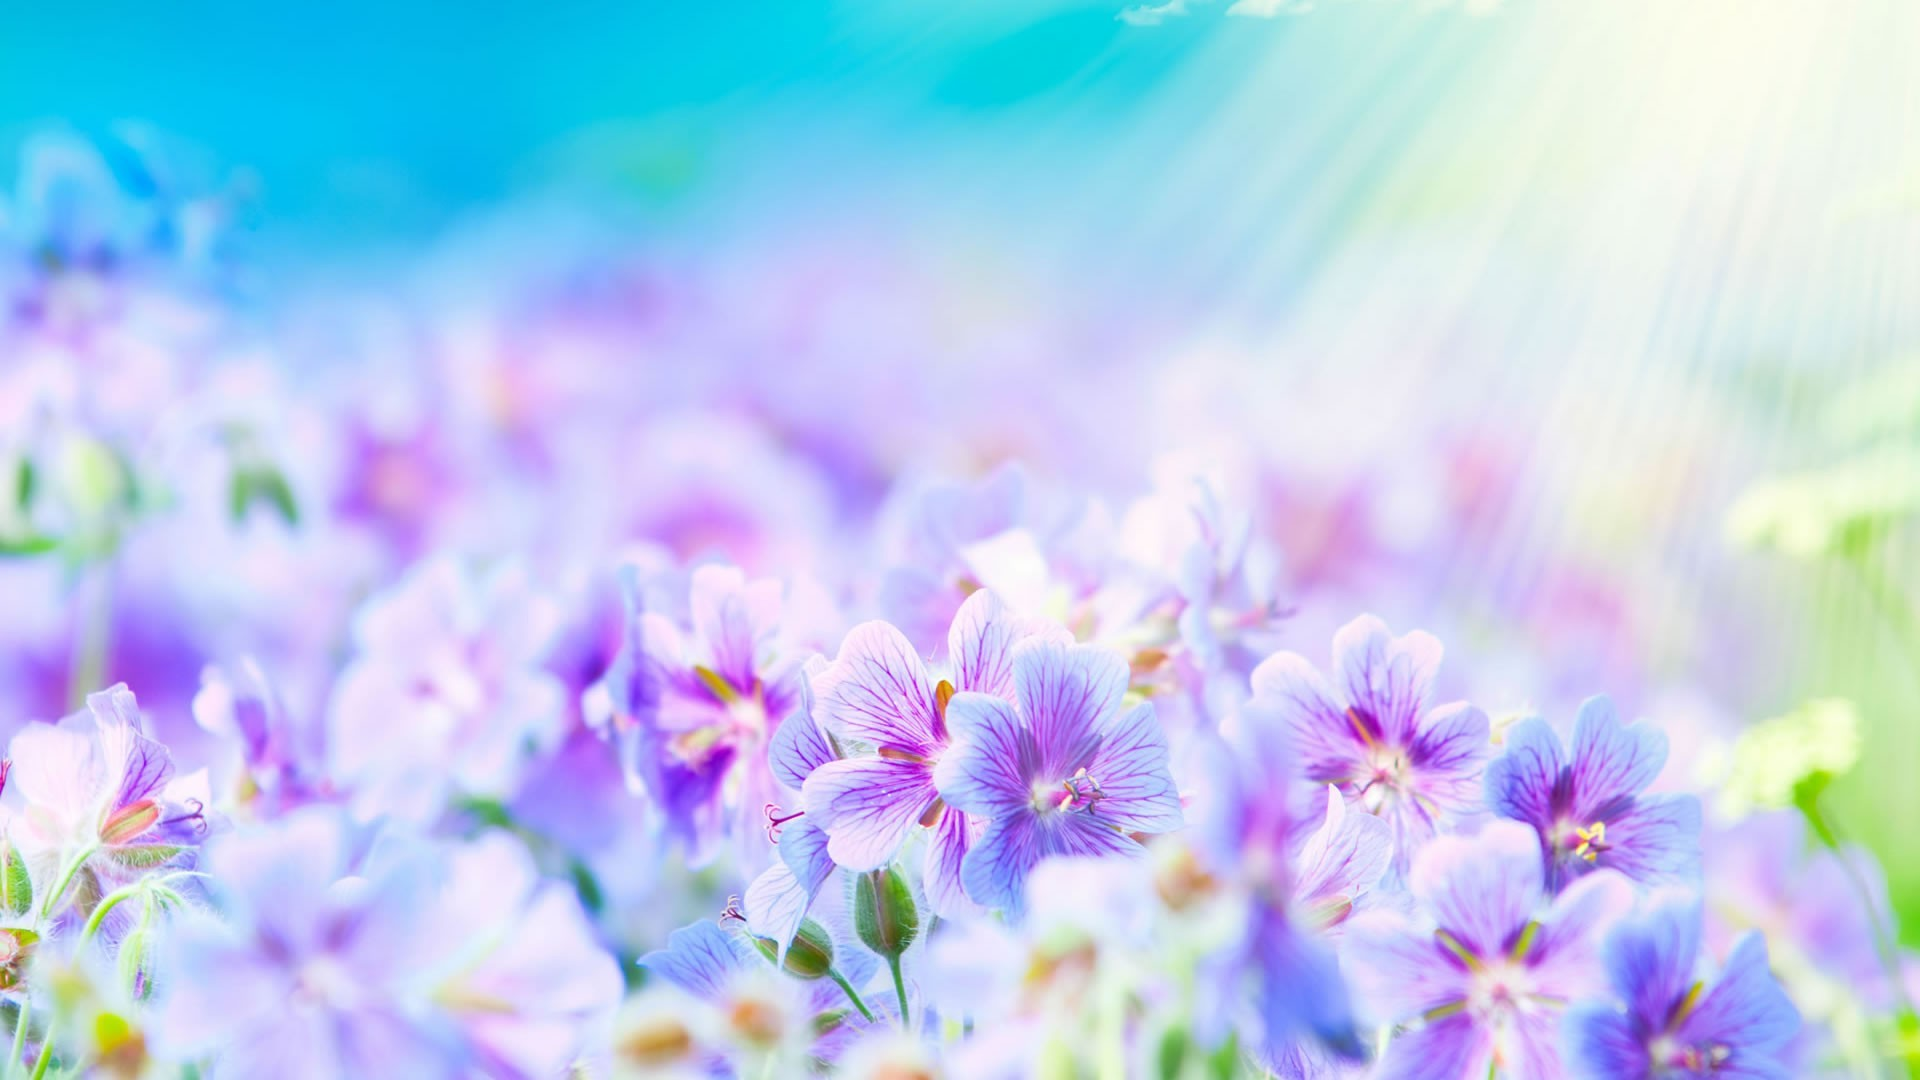 Delicate purple flowers illuminated by the sun